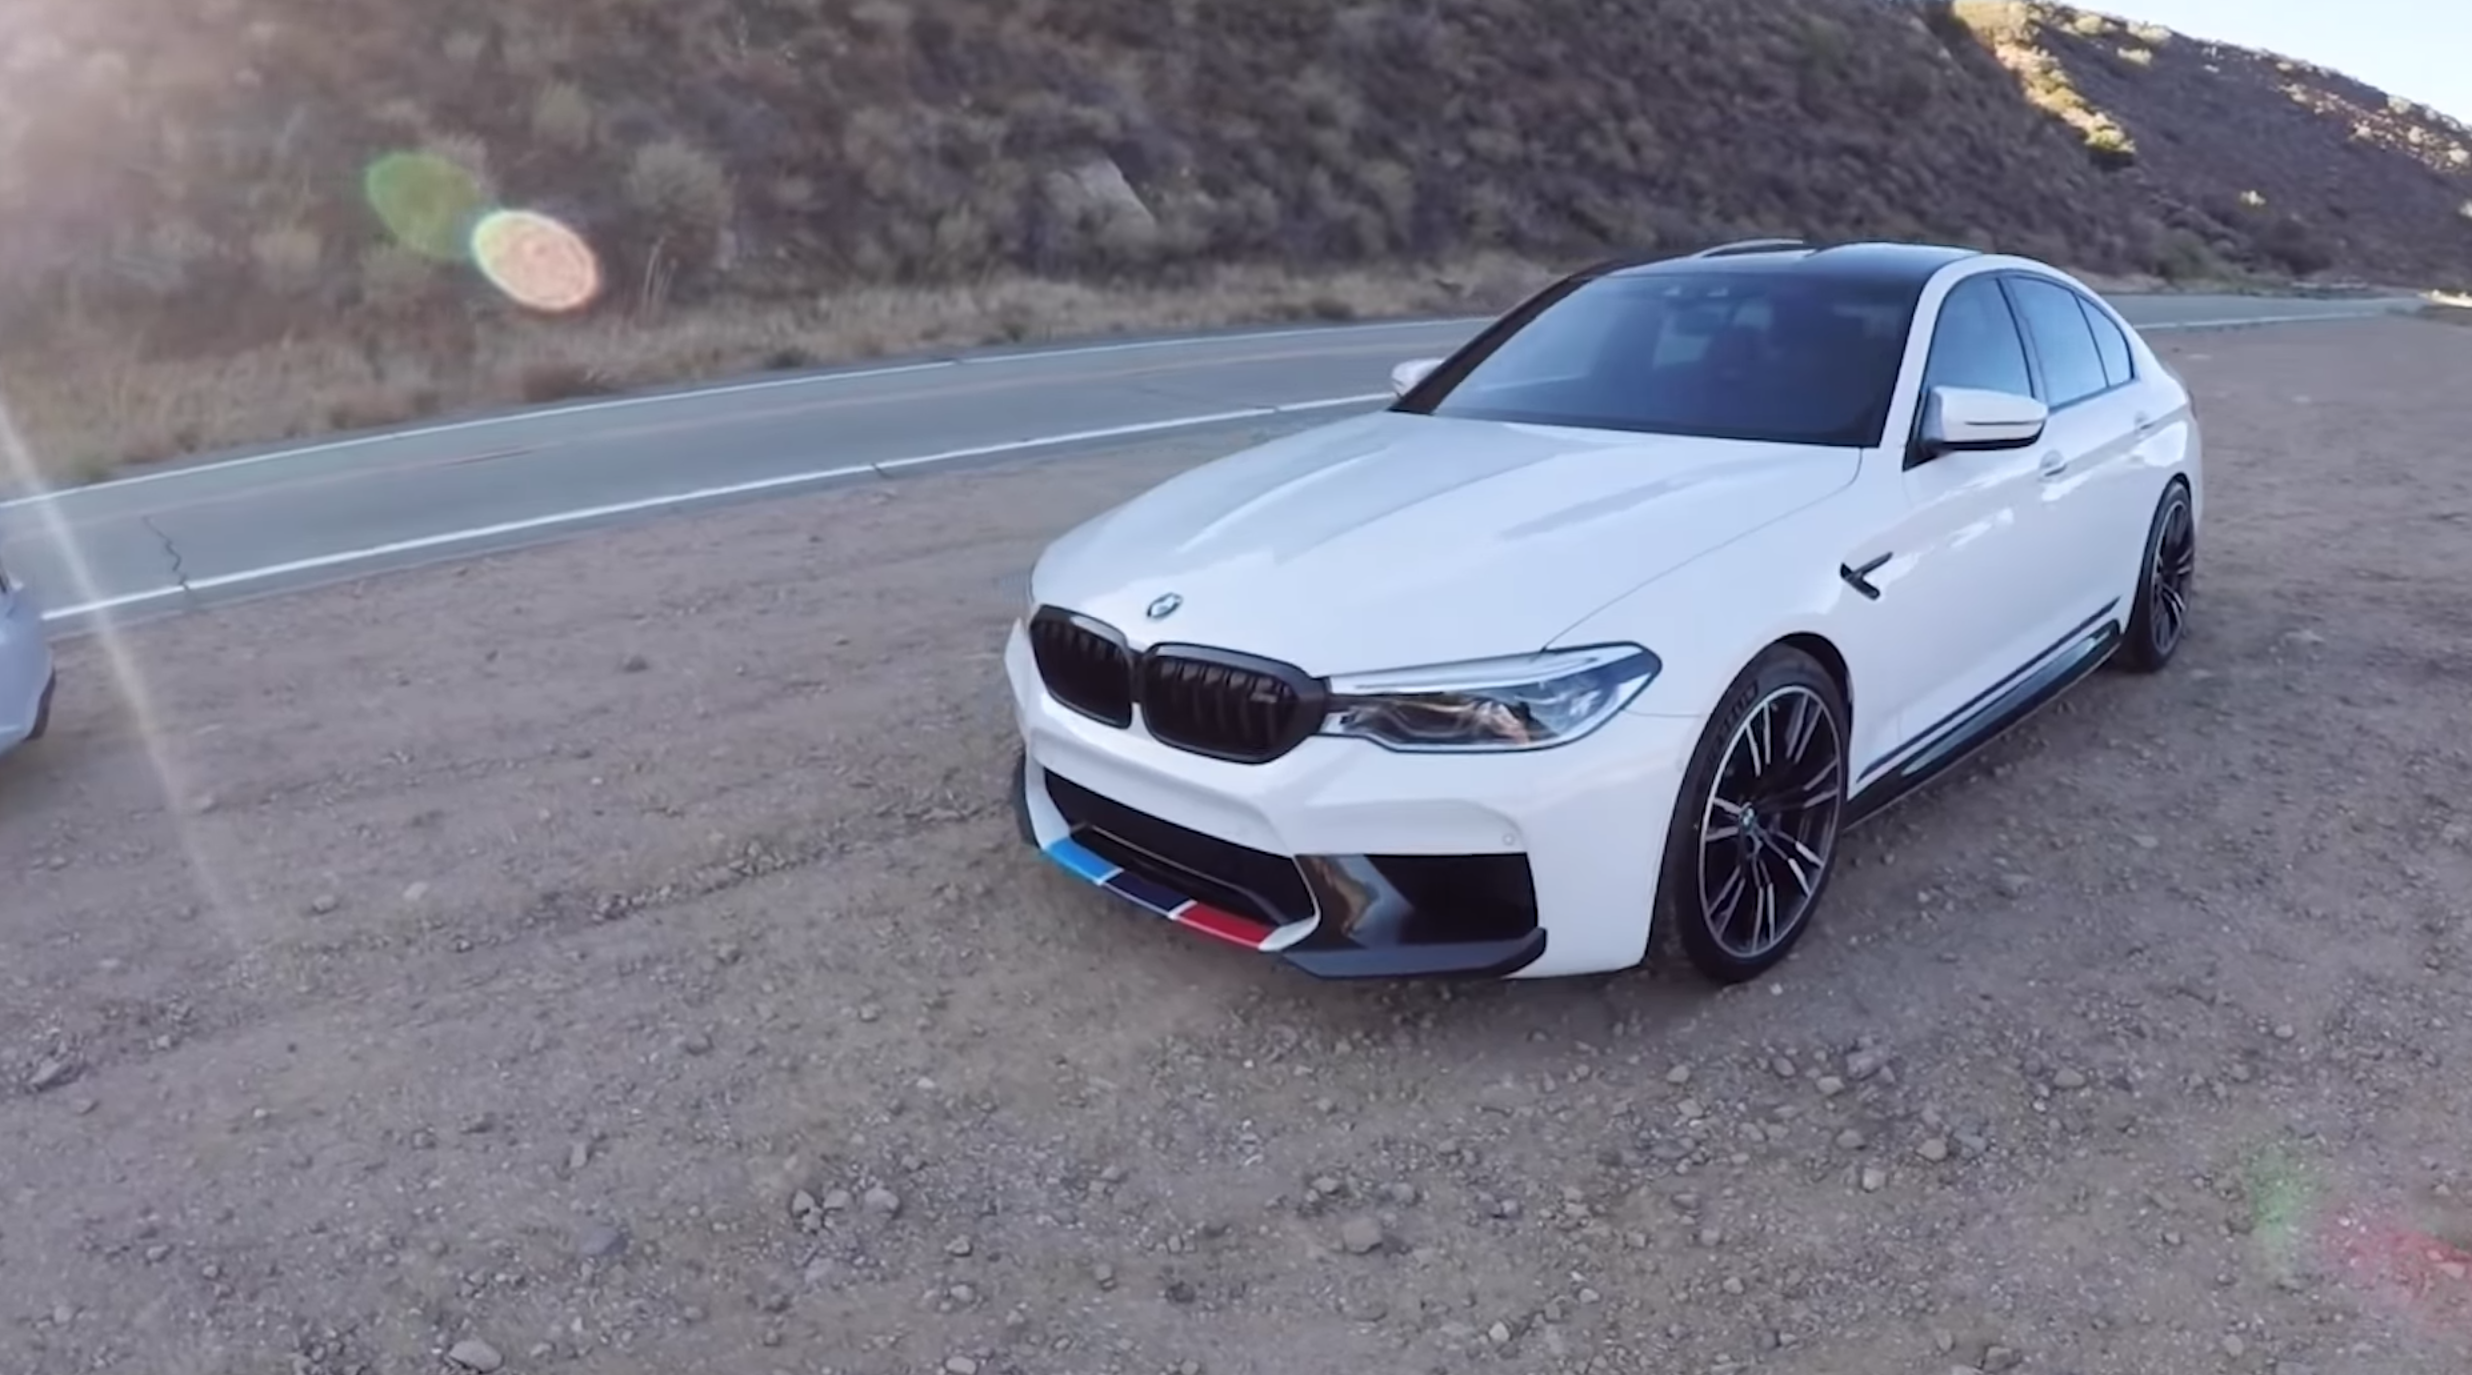 Noelle Performance Tunes F90 Bmw M5 To 850 Horsepower